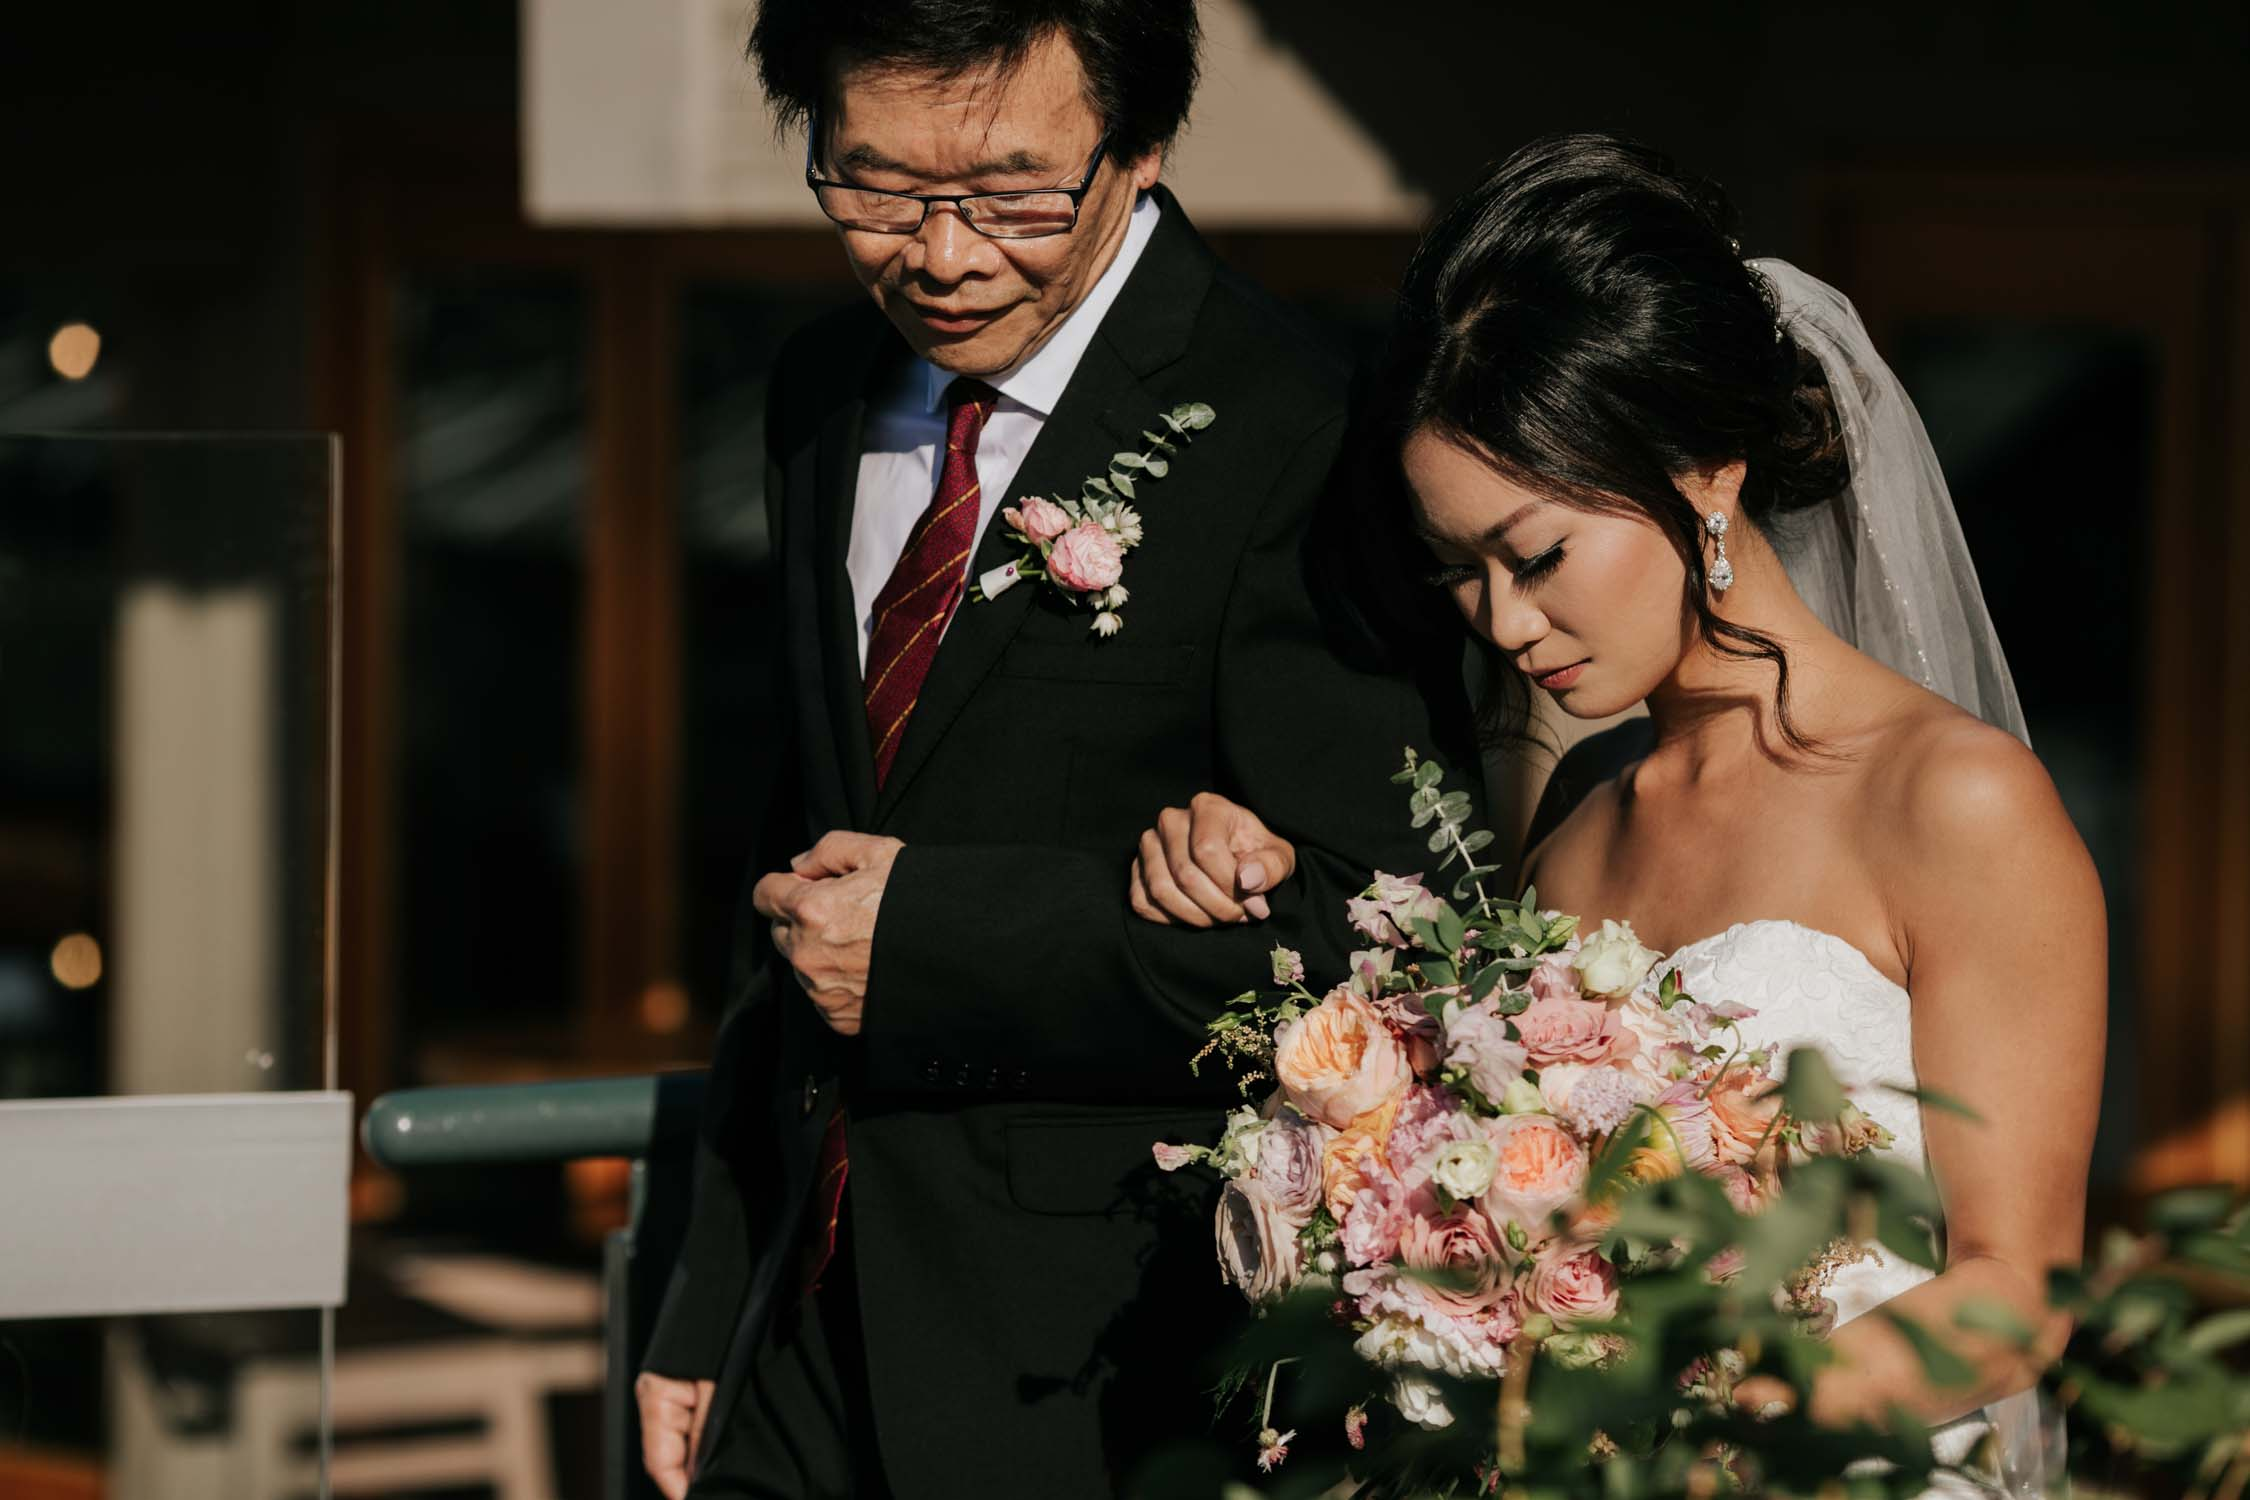 Bride Walks With Father Down Aisle Emotional Moment